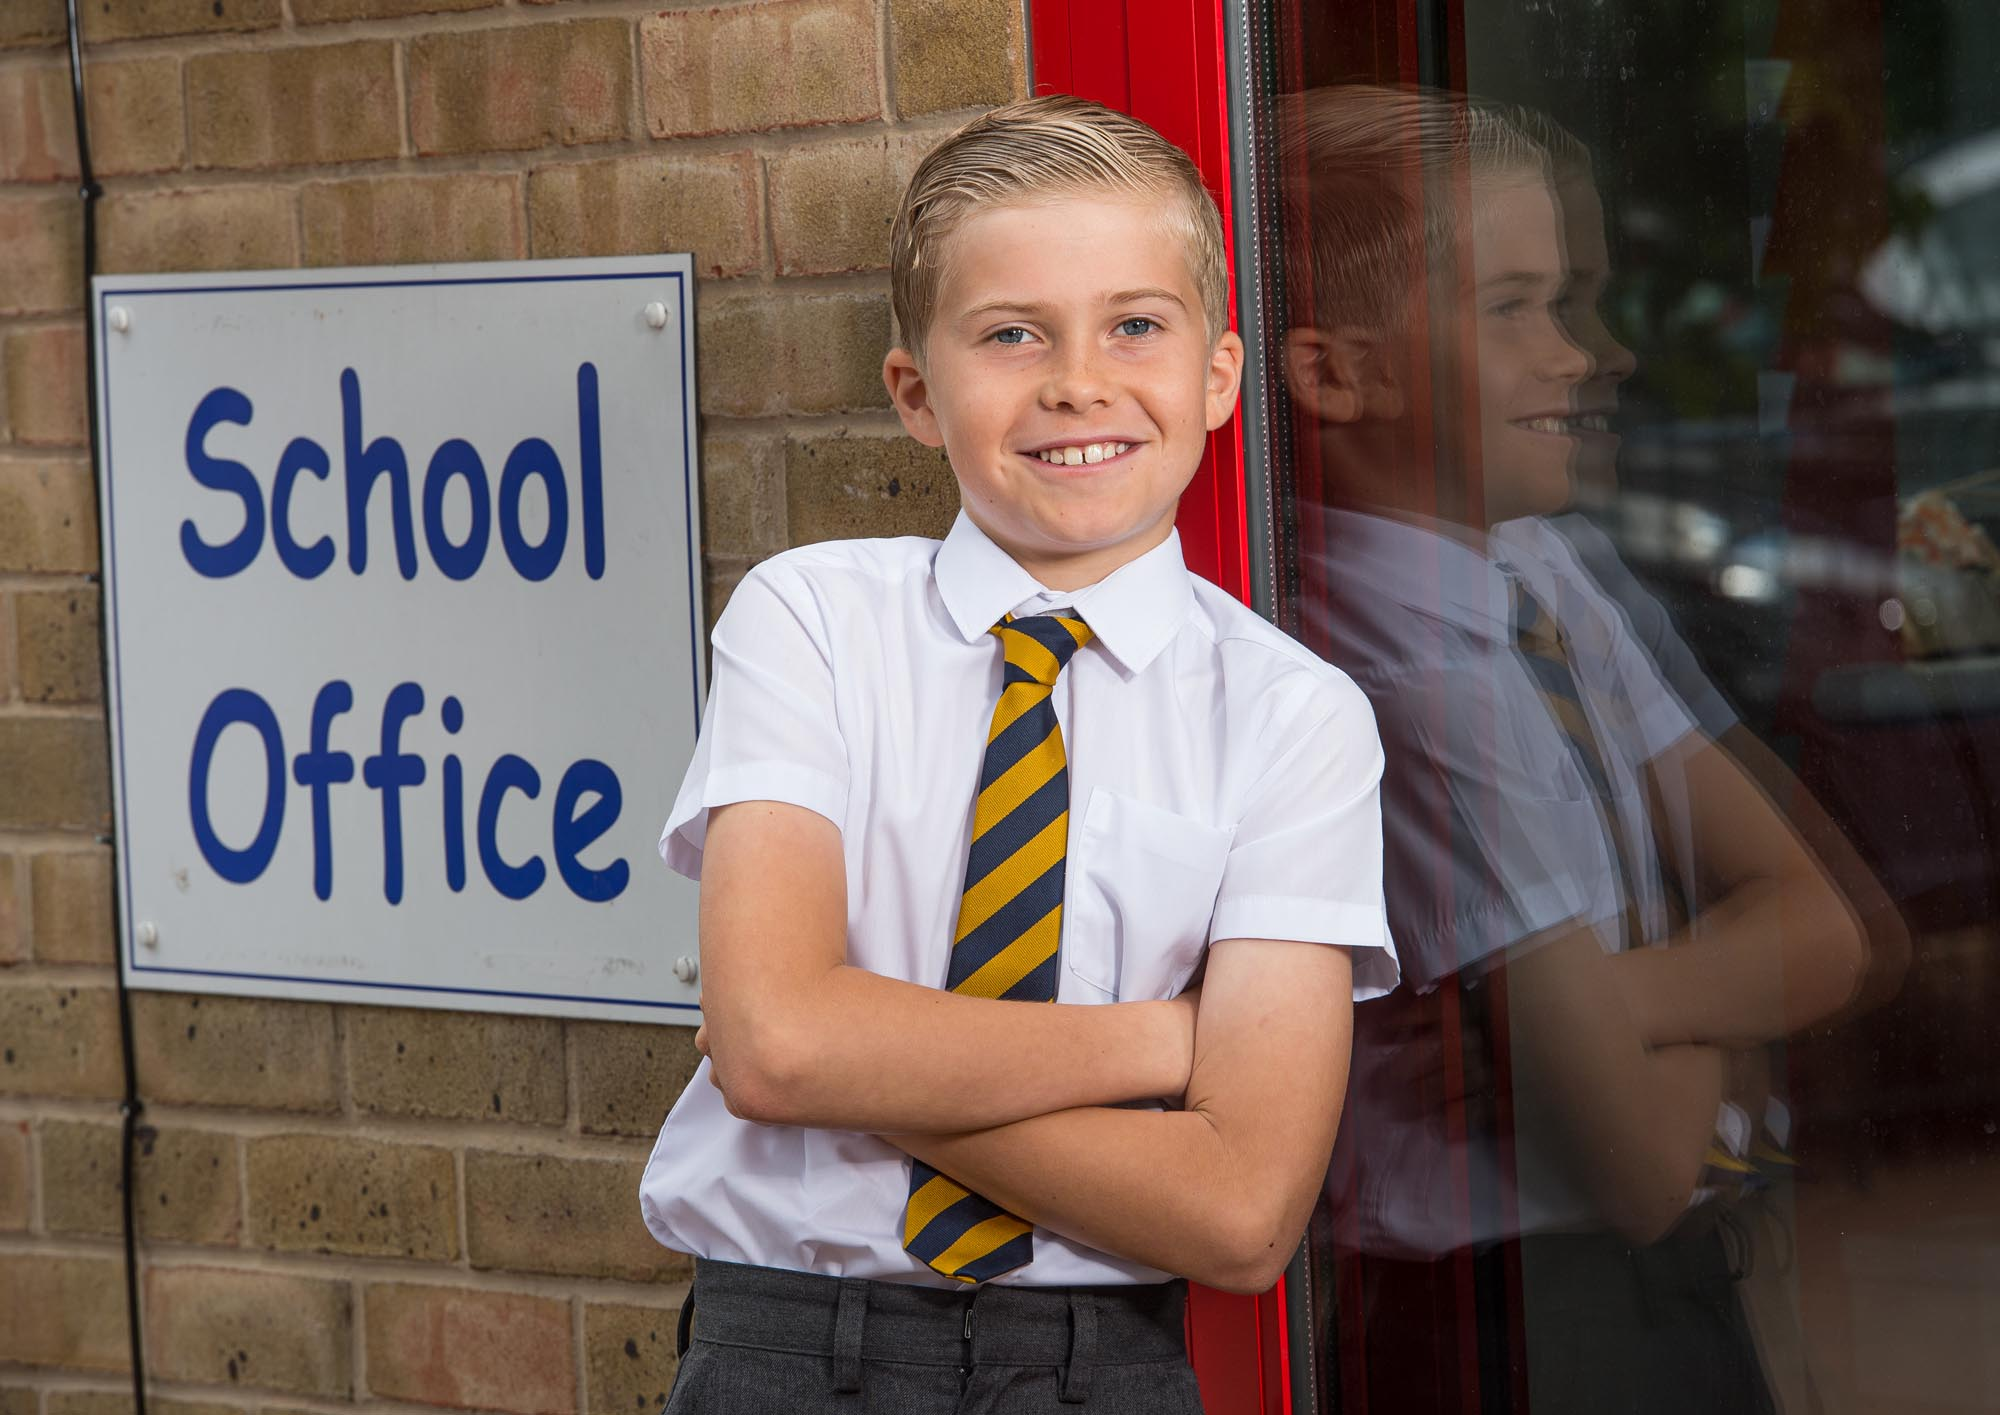 Boy leaning towards wall outside school office